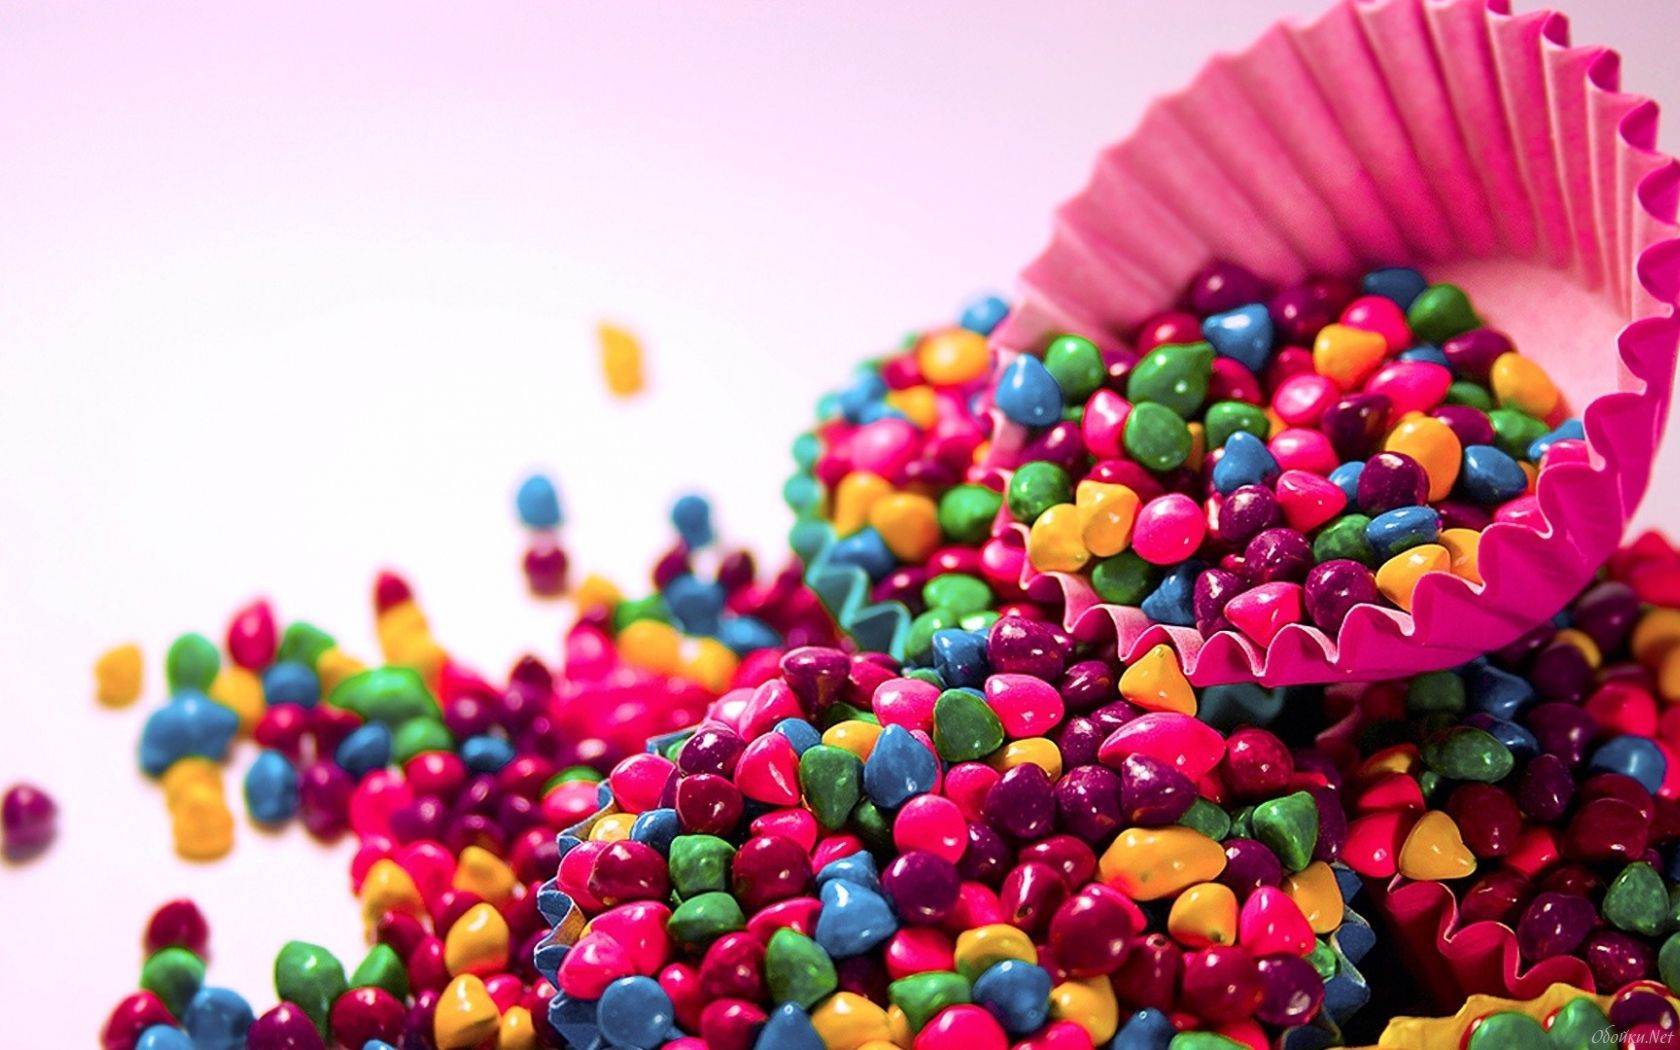 candy wallpaper 5846 Colorful Feast for the Eyes in 2019 1680x1050